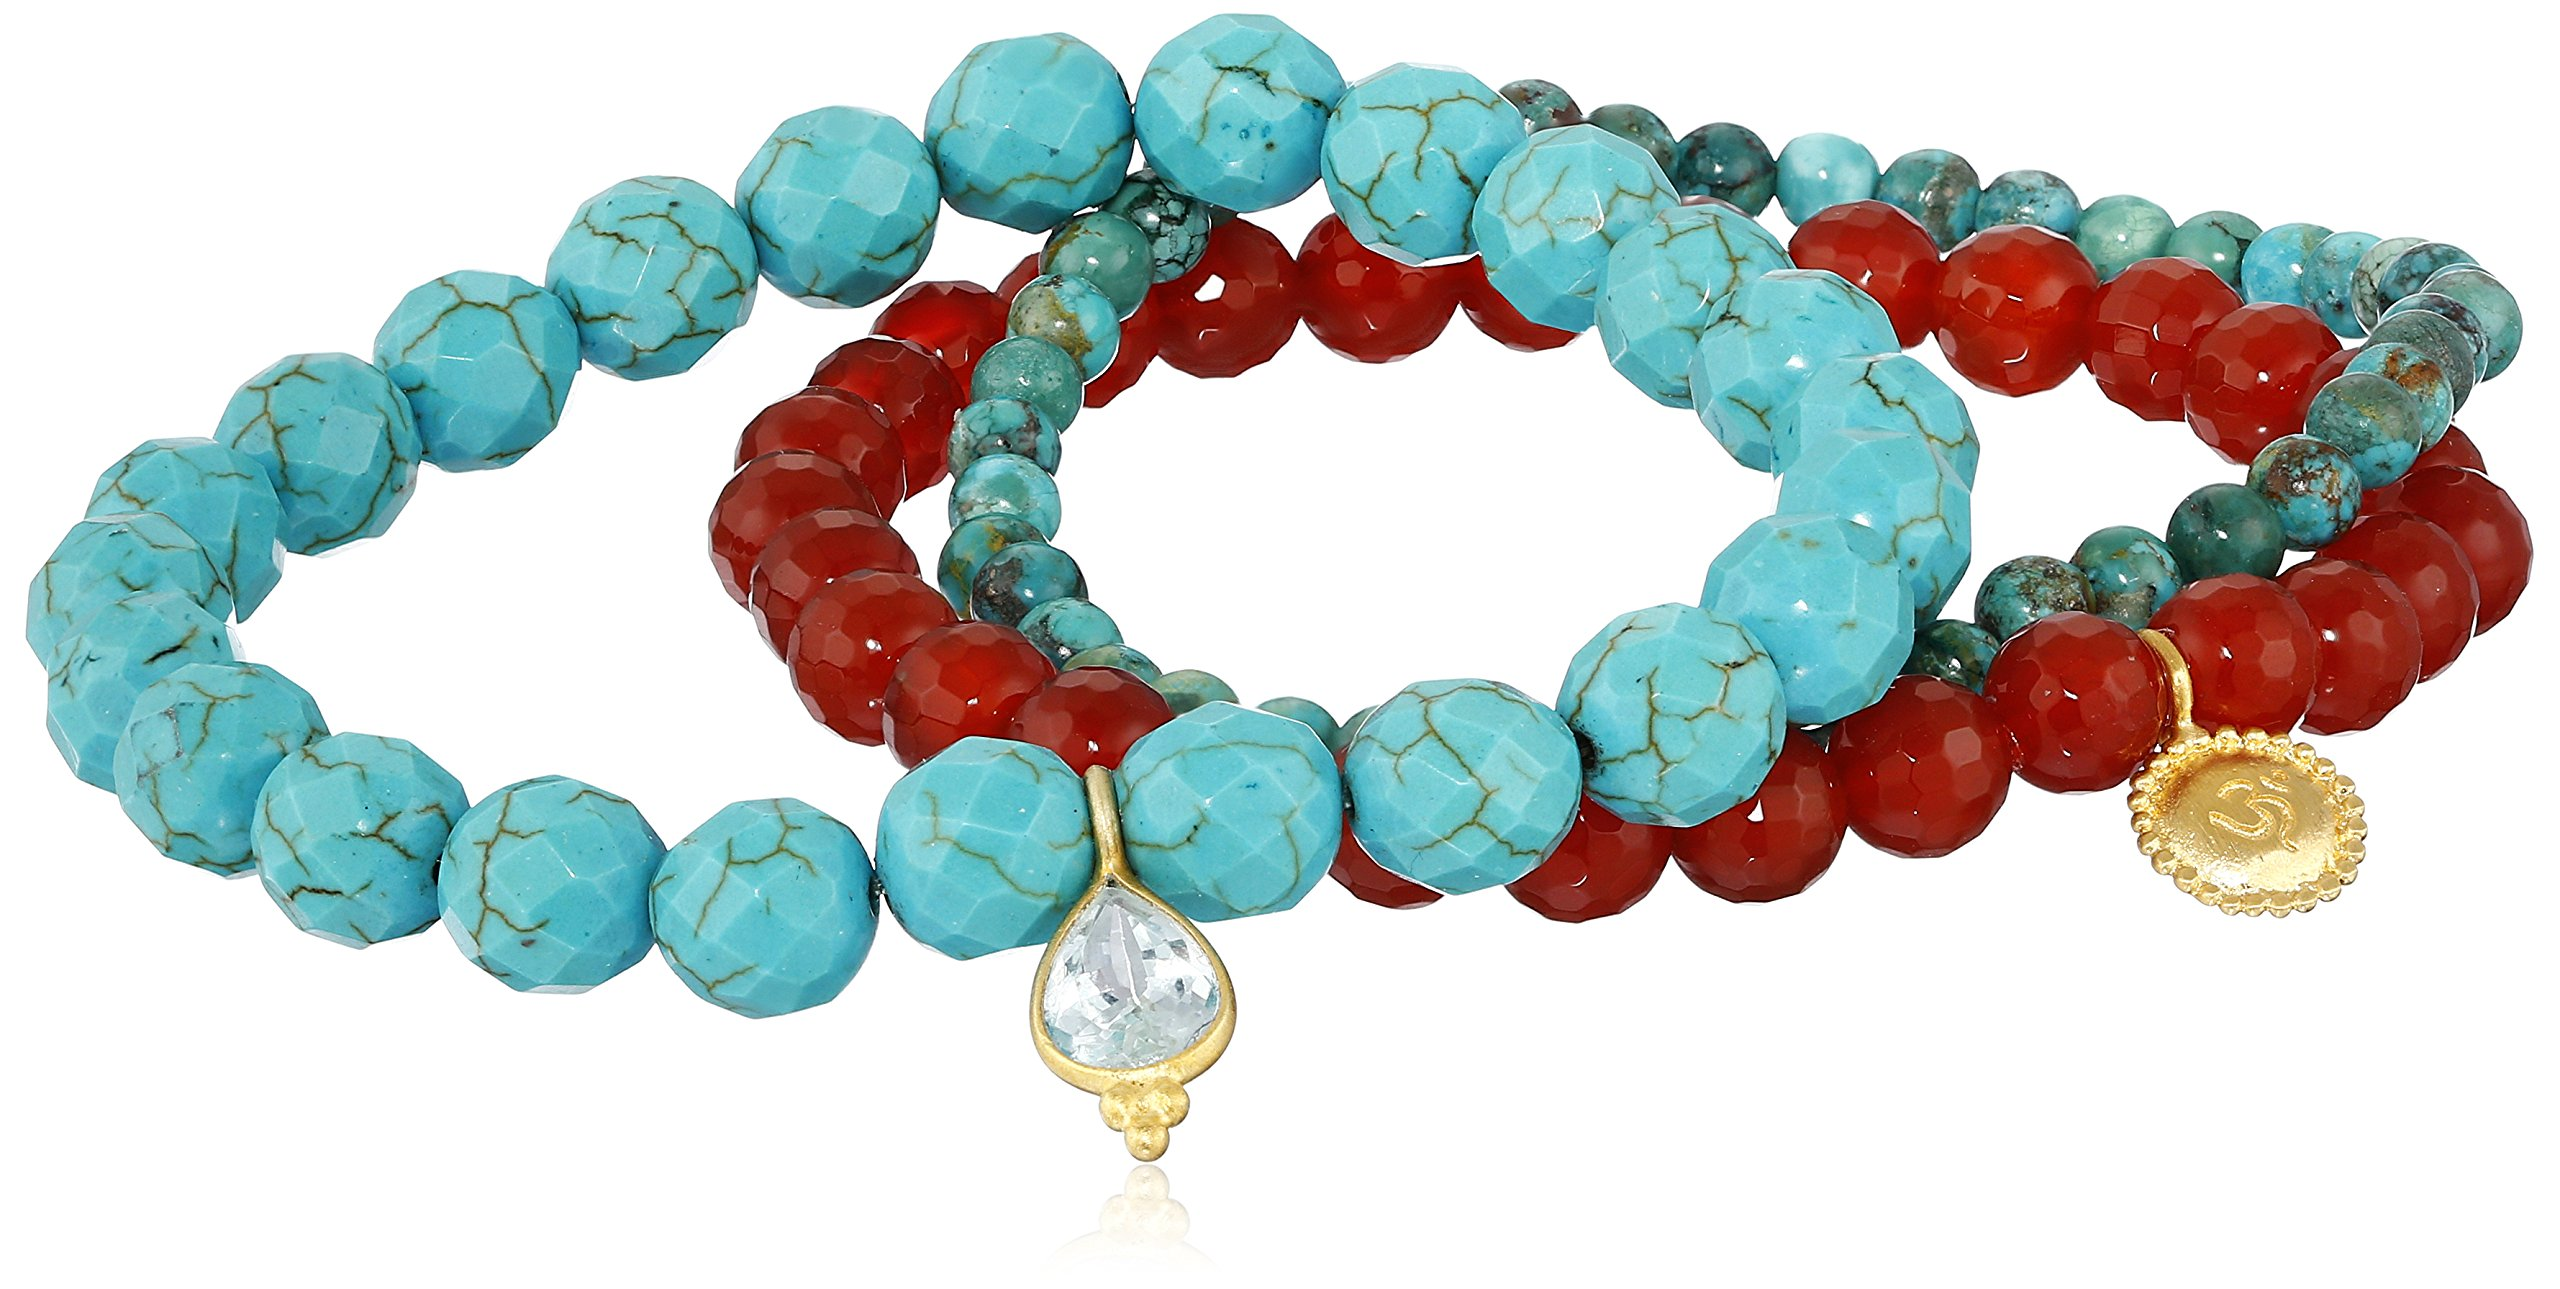 Satya Jewelry New Classics Empowerment Stretch Bracelet by Satya Jewelry